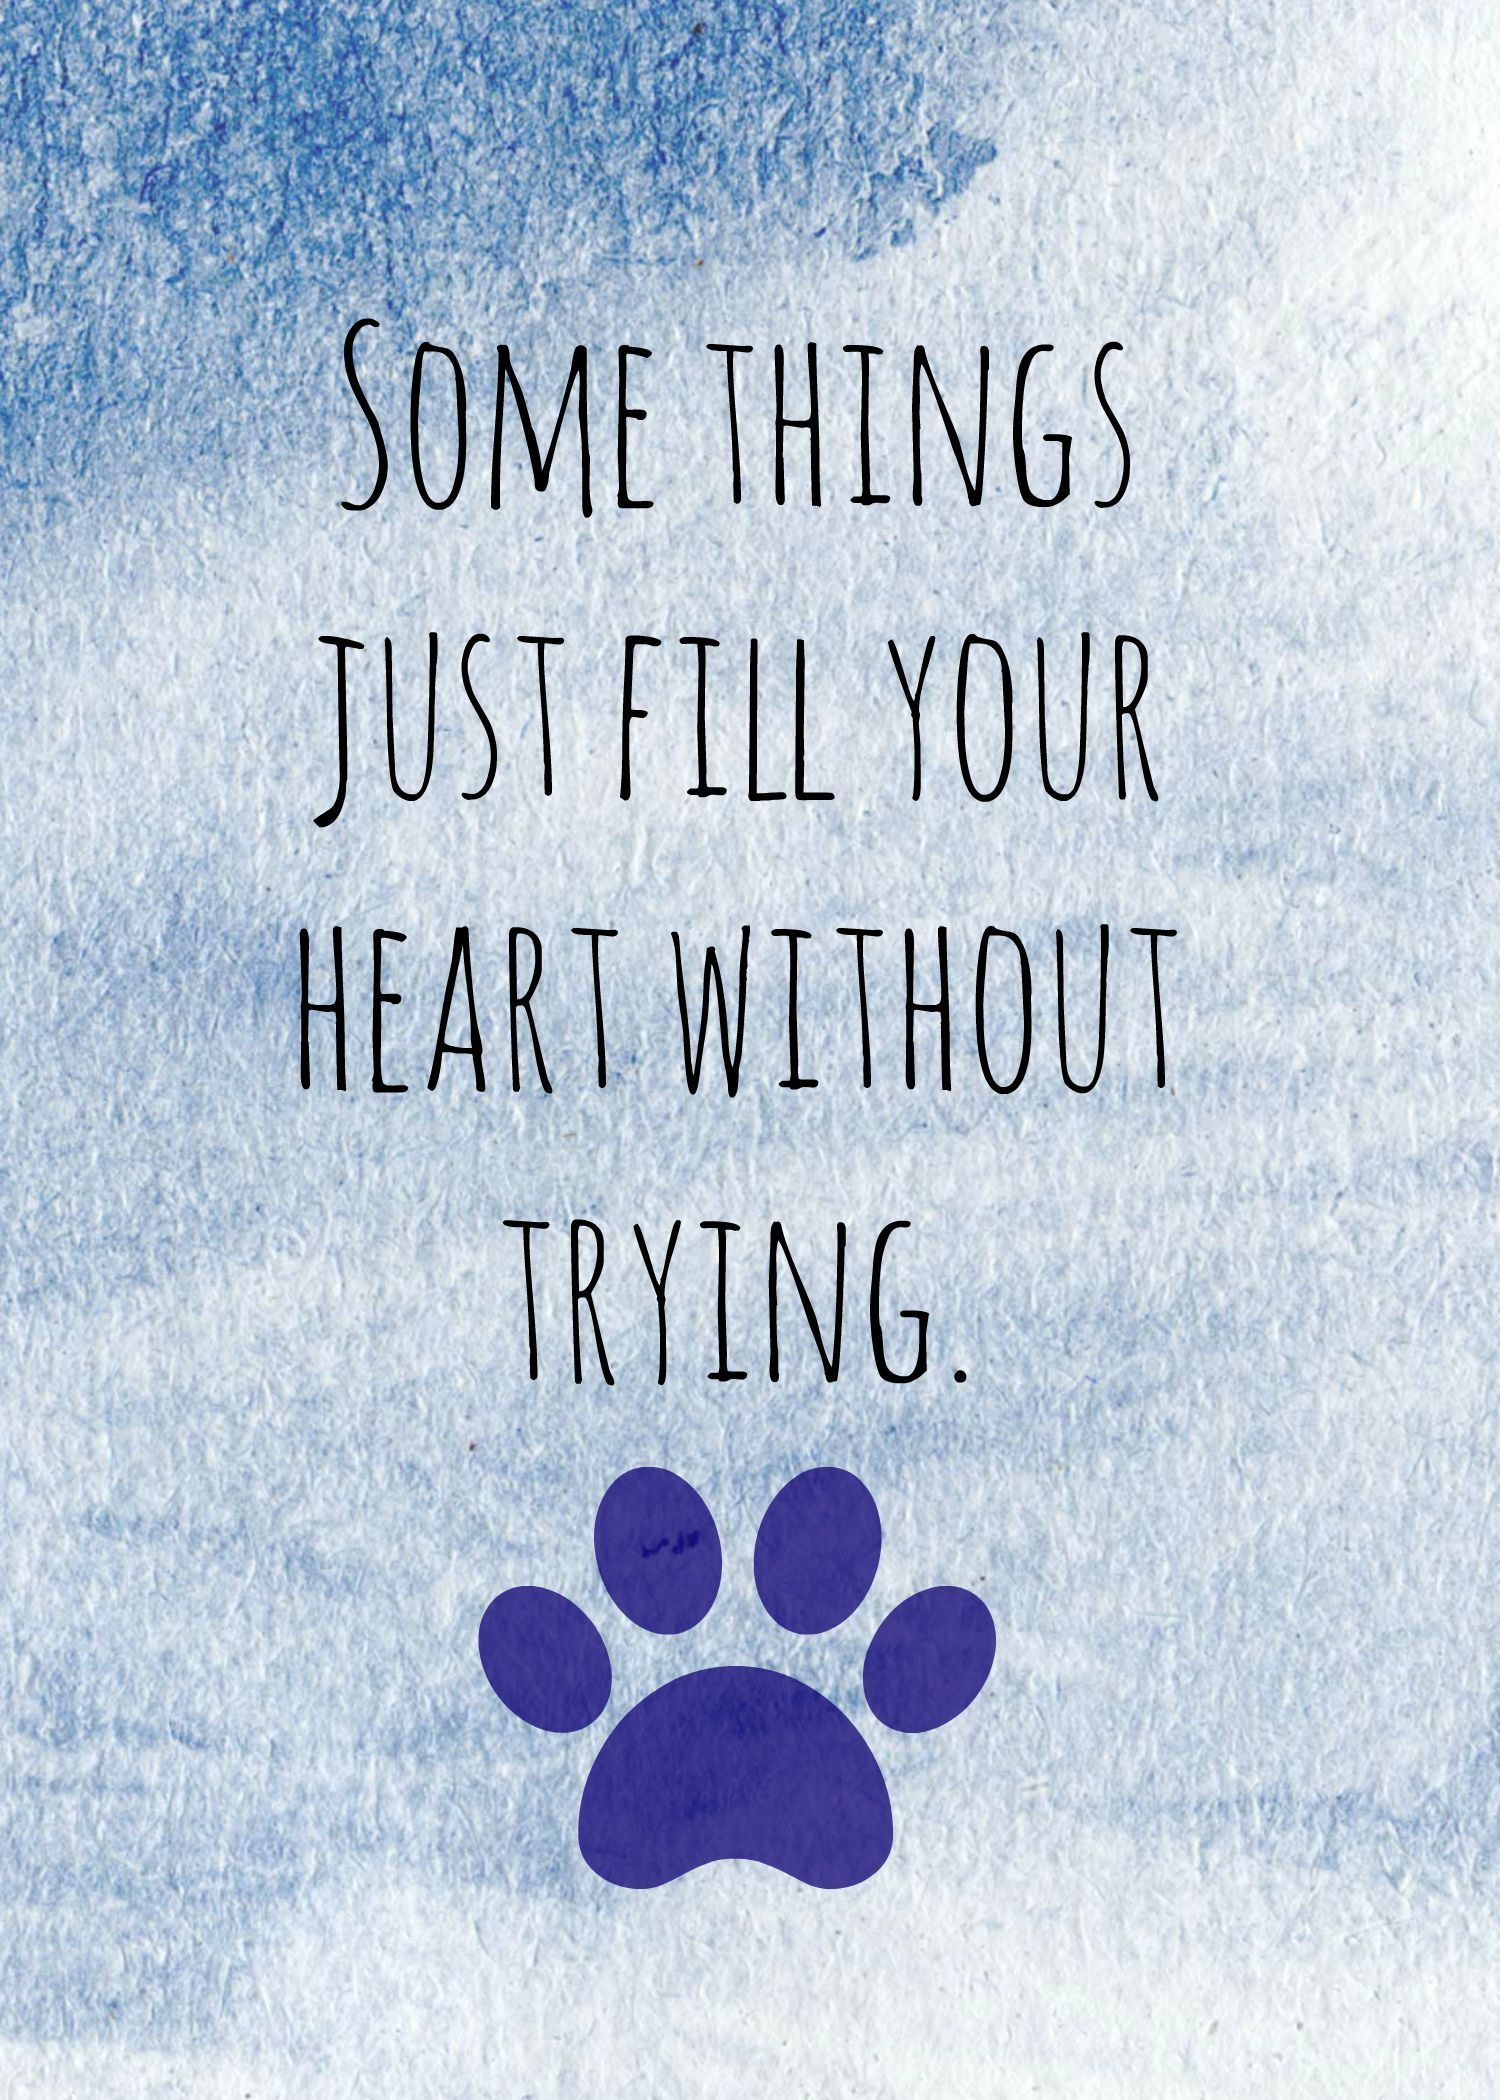 Quotes About Dogs Some Things#dog #quote #saying  Wwwfordogtrainers  #dog